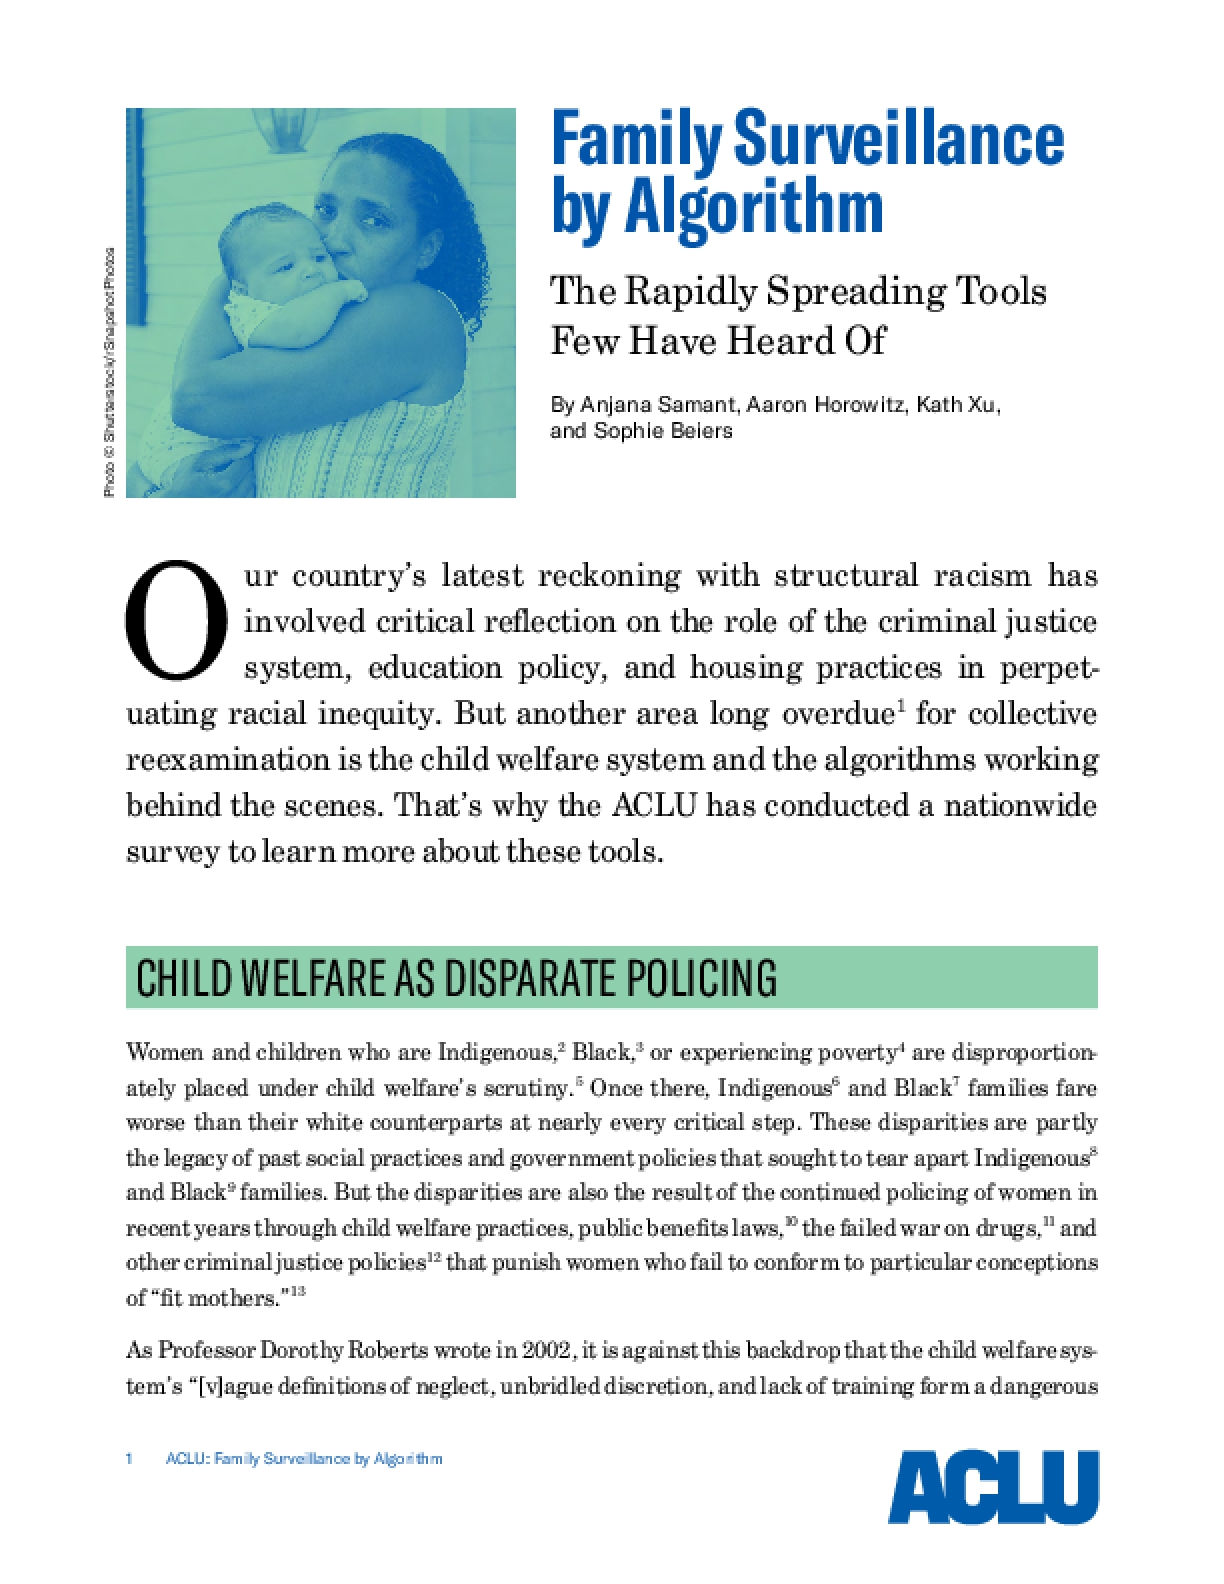 Family Surveillance by Algorithm: The Rapidly Spreading Tools Few Have Heard Of